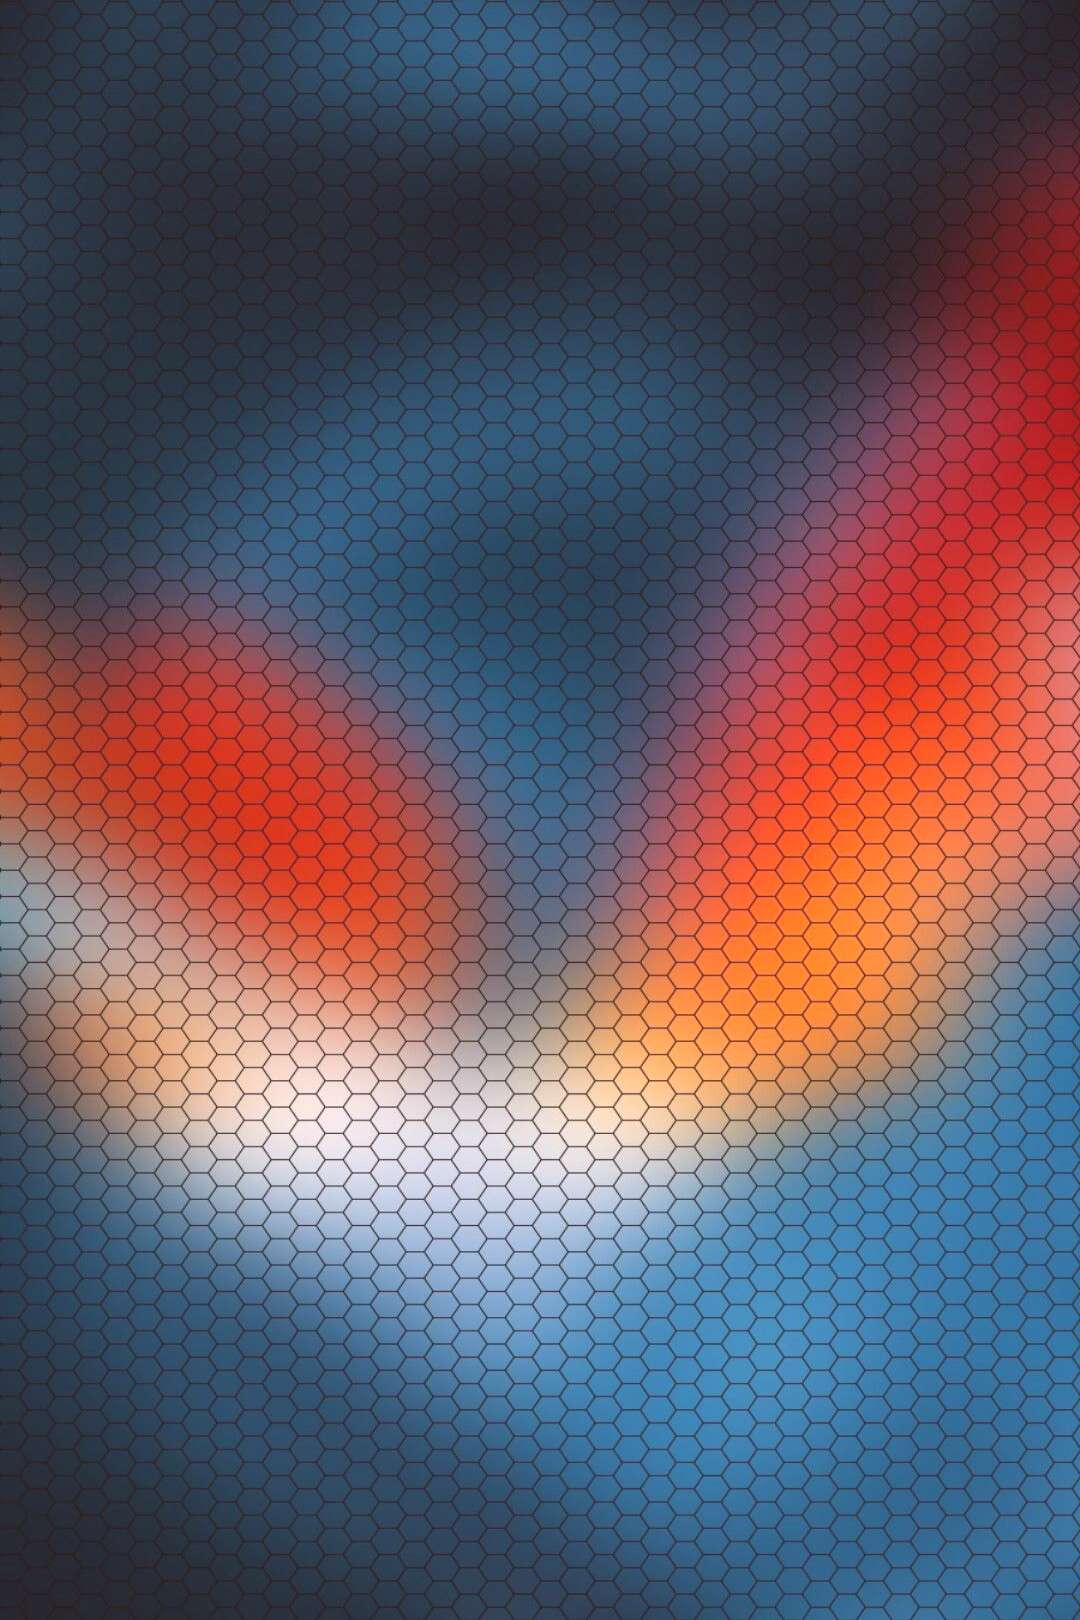 Abstract Blue And Orange Wallpaper Mobile Abstract Blue And Orange Wallpaper Mobile